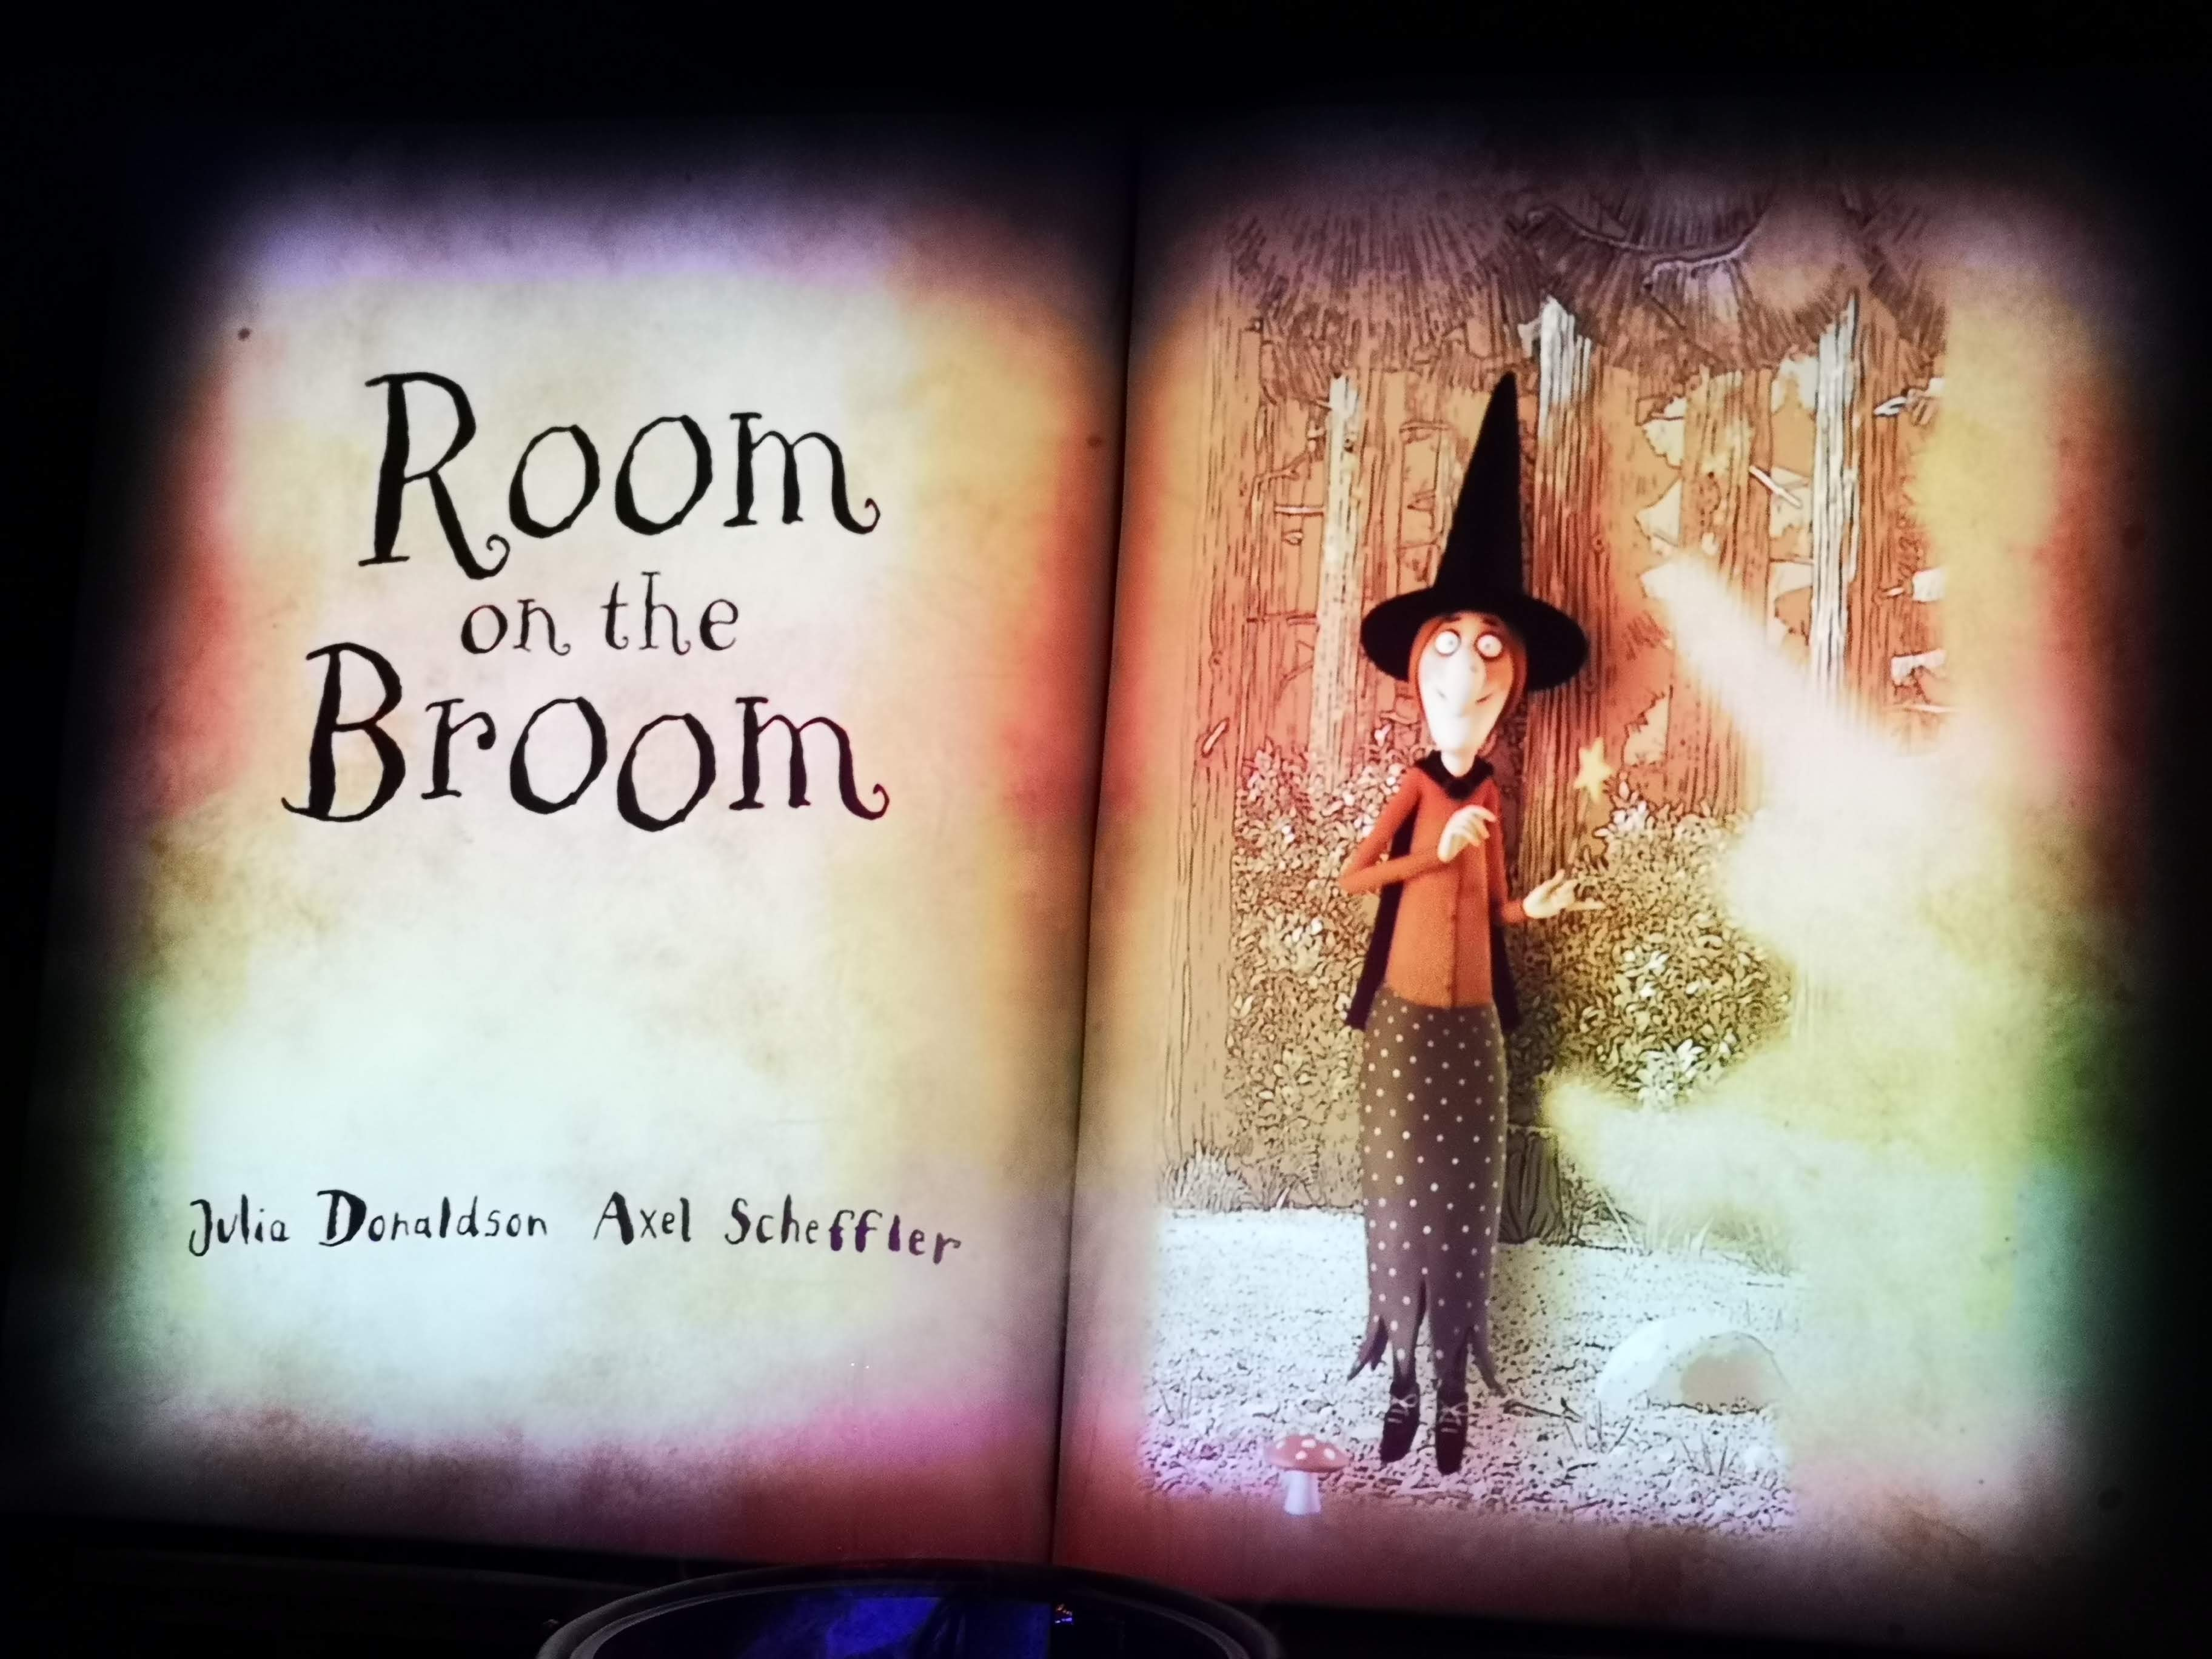 Room On A Broom at Chessington World of Adventures